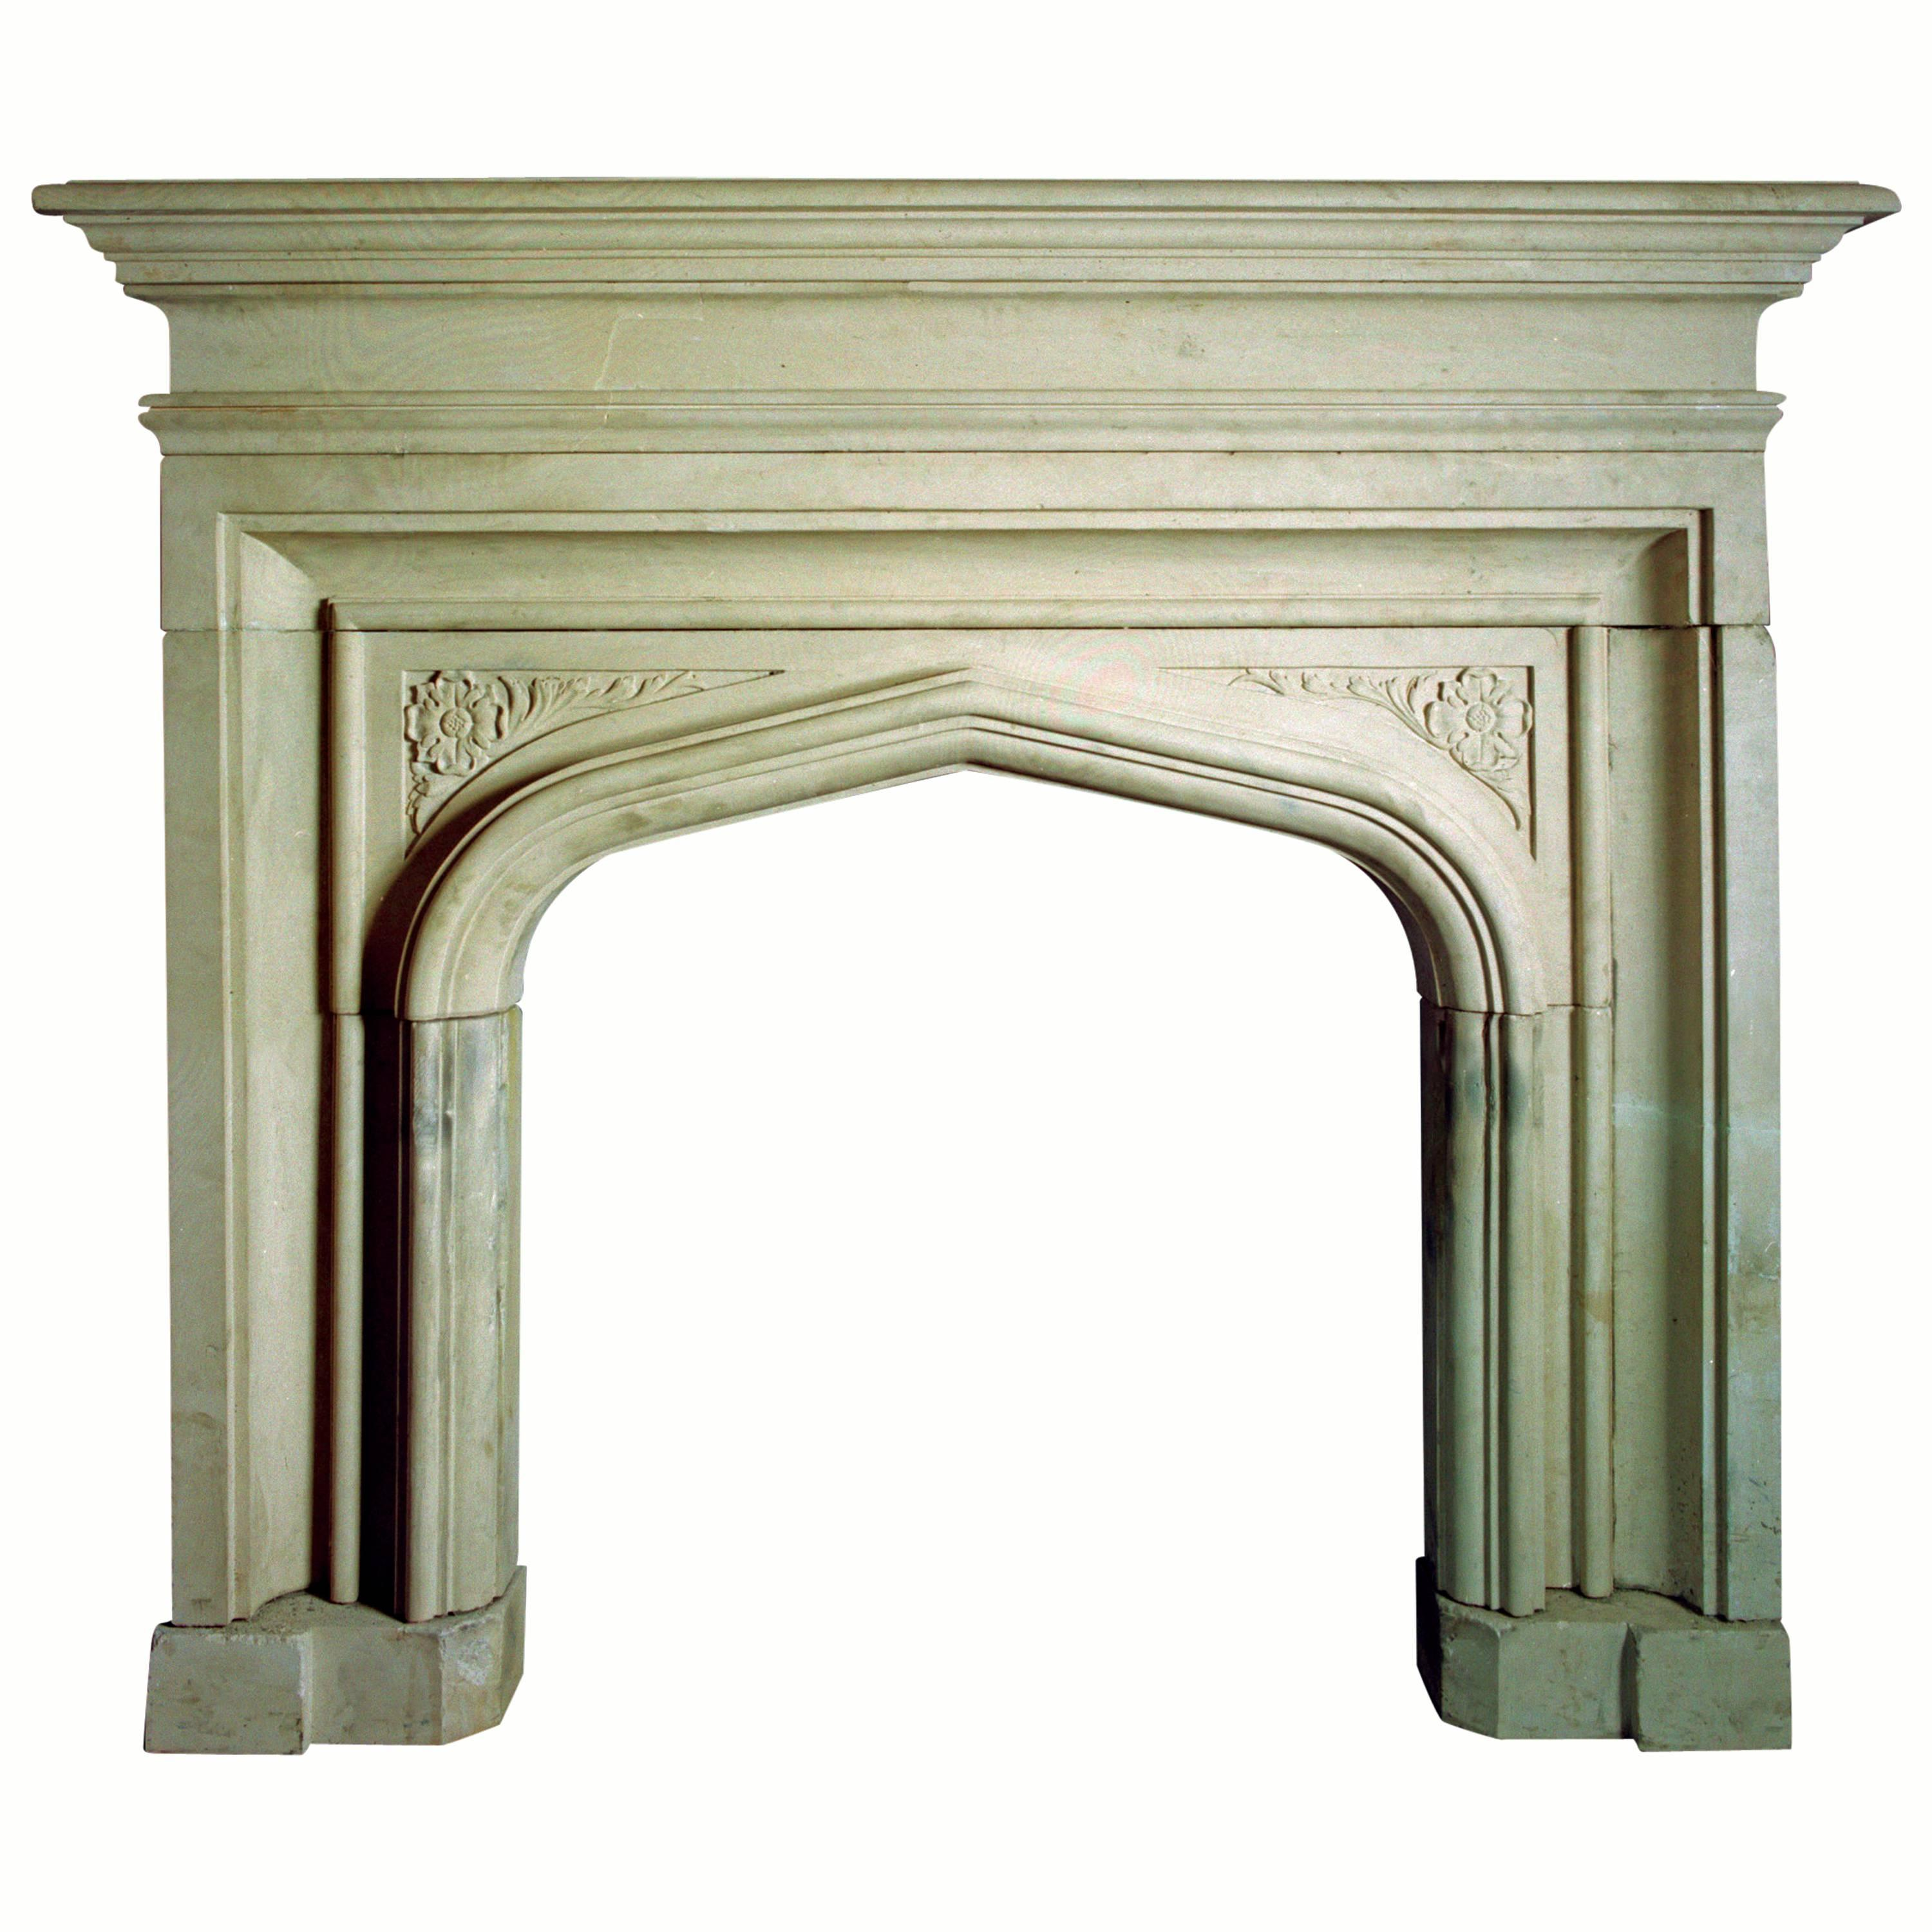 New And Custom Fireplaces and Mantels